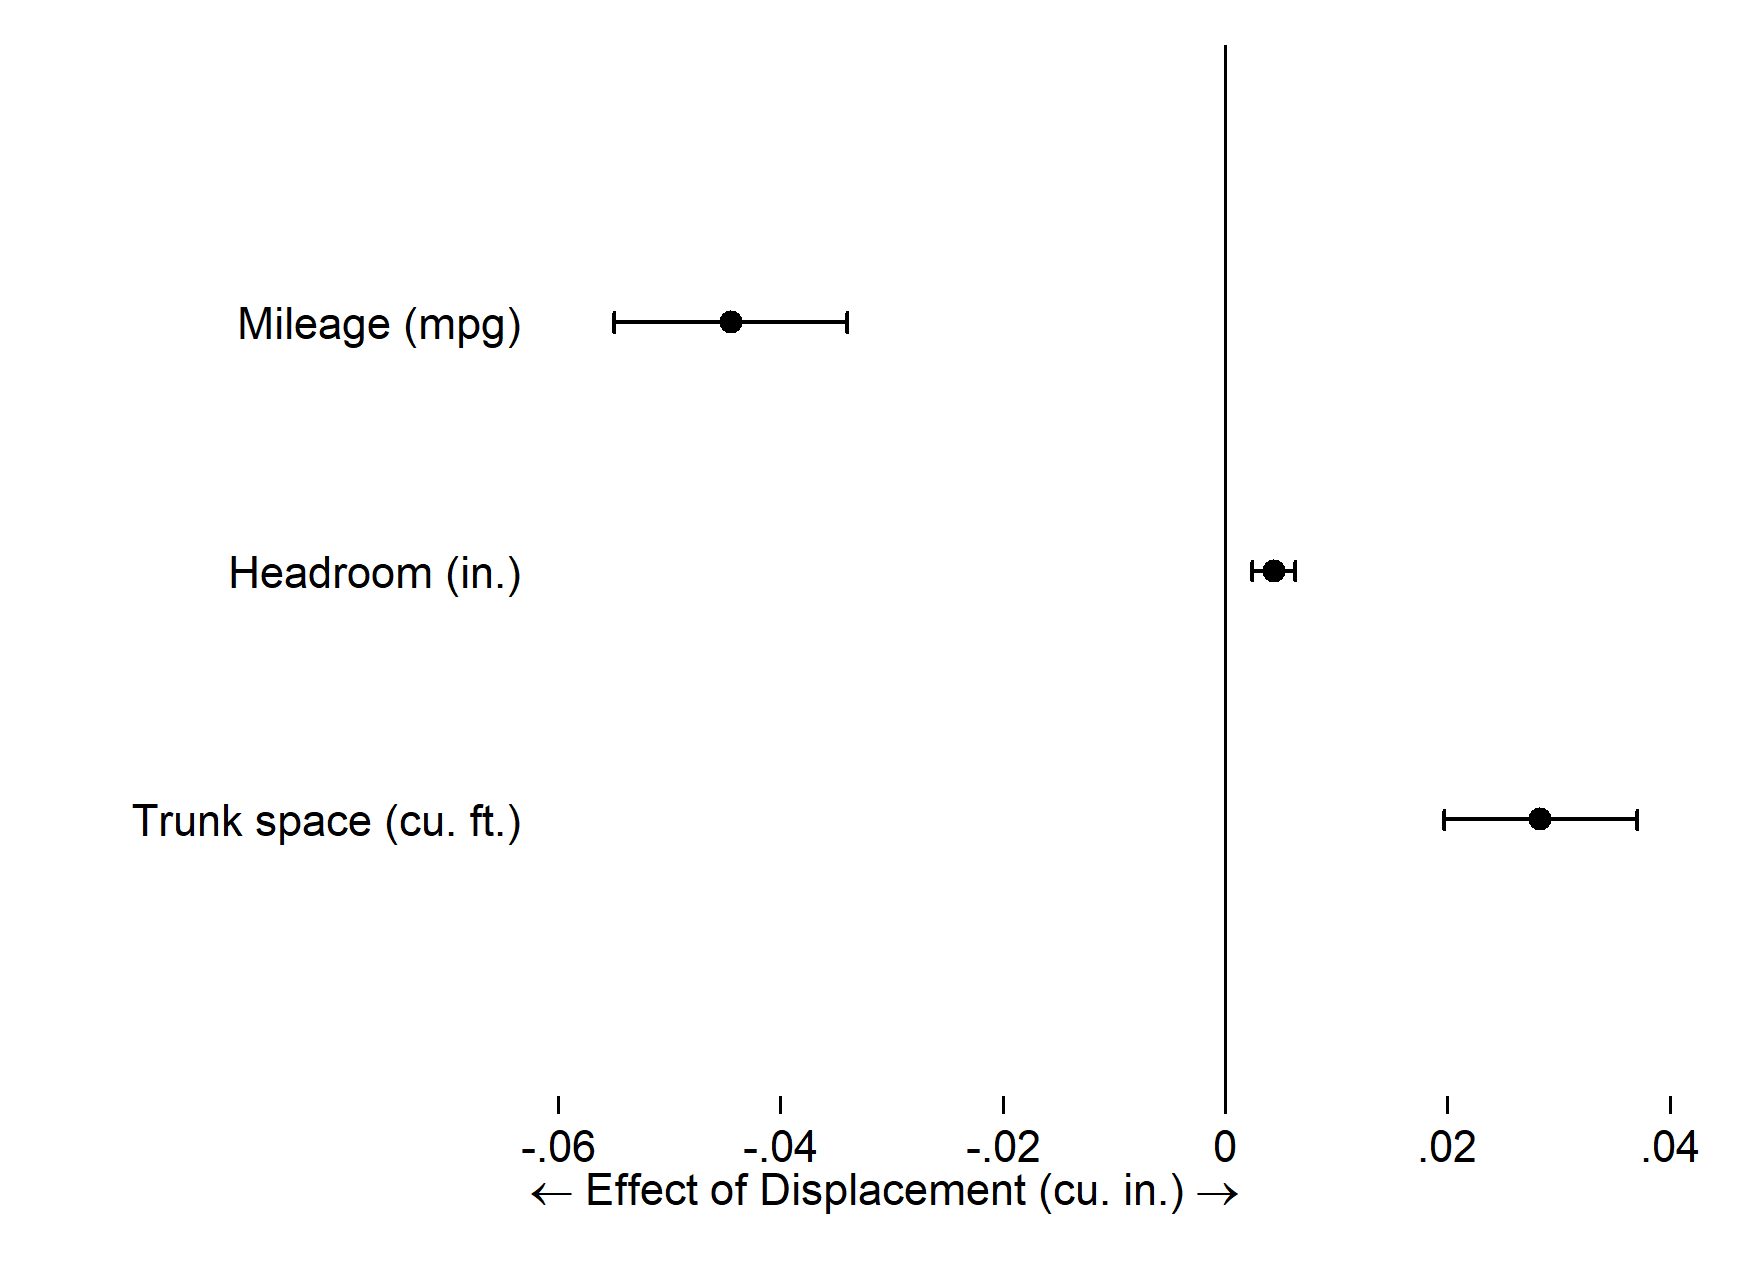 Effect of Displacement on Mileage, Headroom, and Trunk Space.png